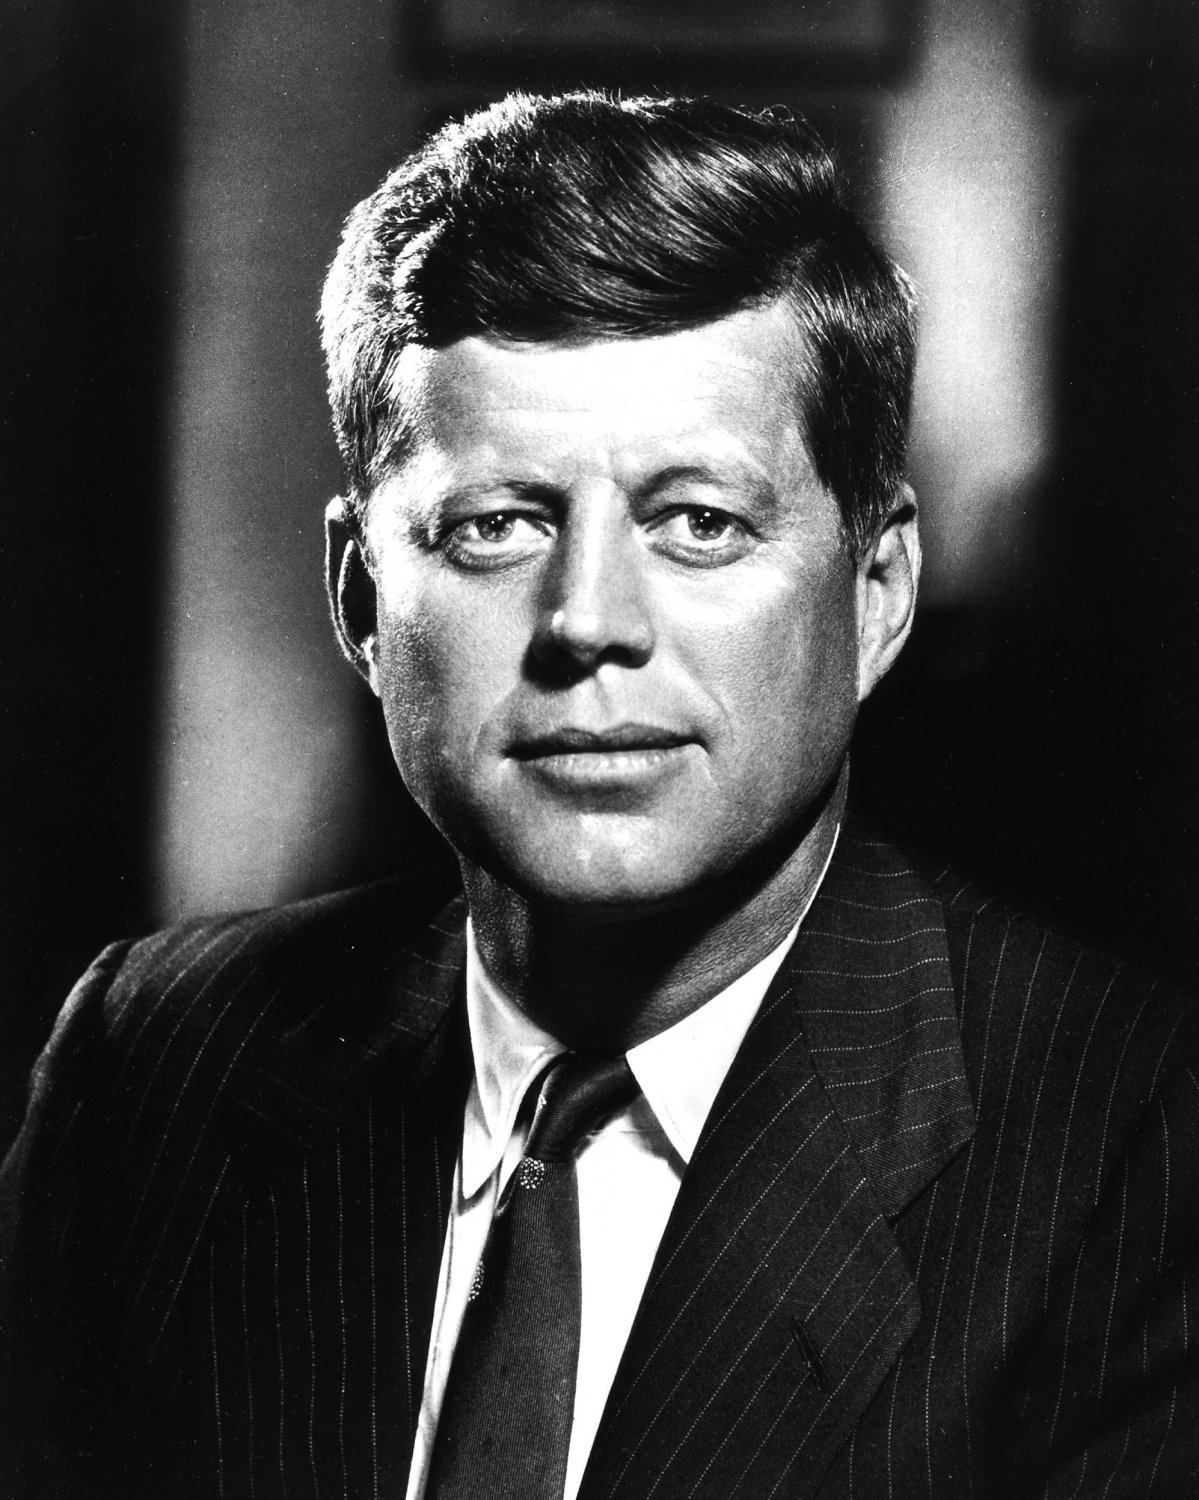 JOHN F. KENNEDY 35th PRESIDENT OF THE UNITED STATES - 8X10 PHOTO (ZY-502)